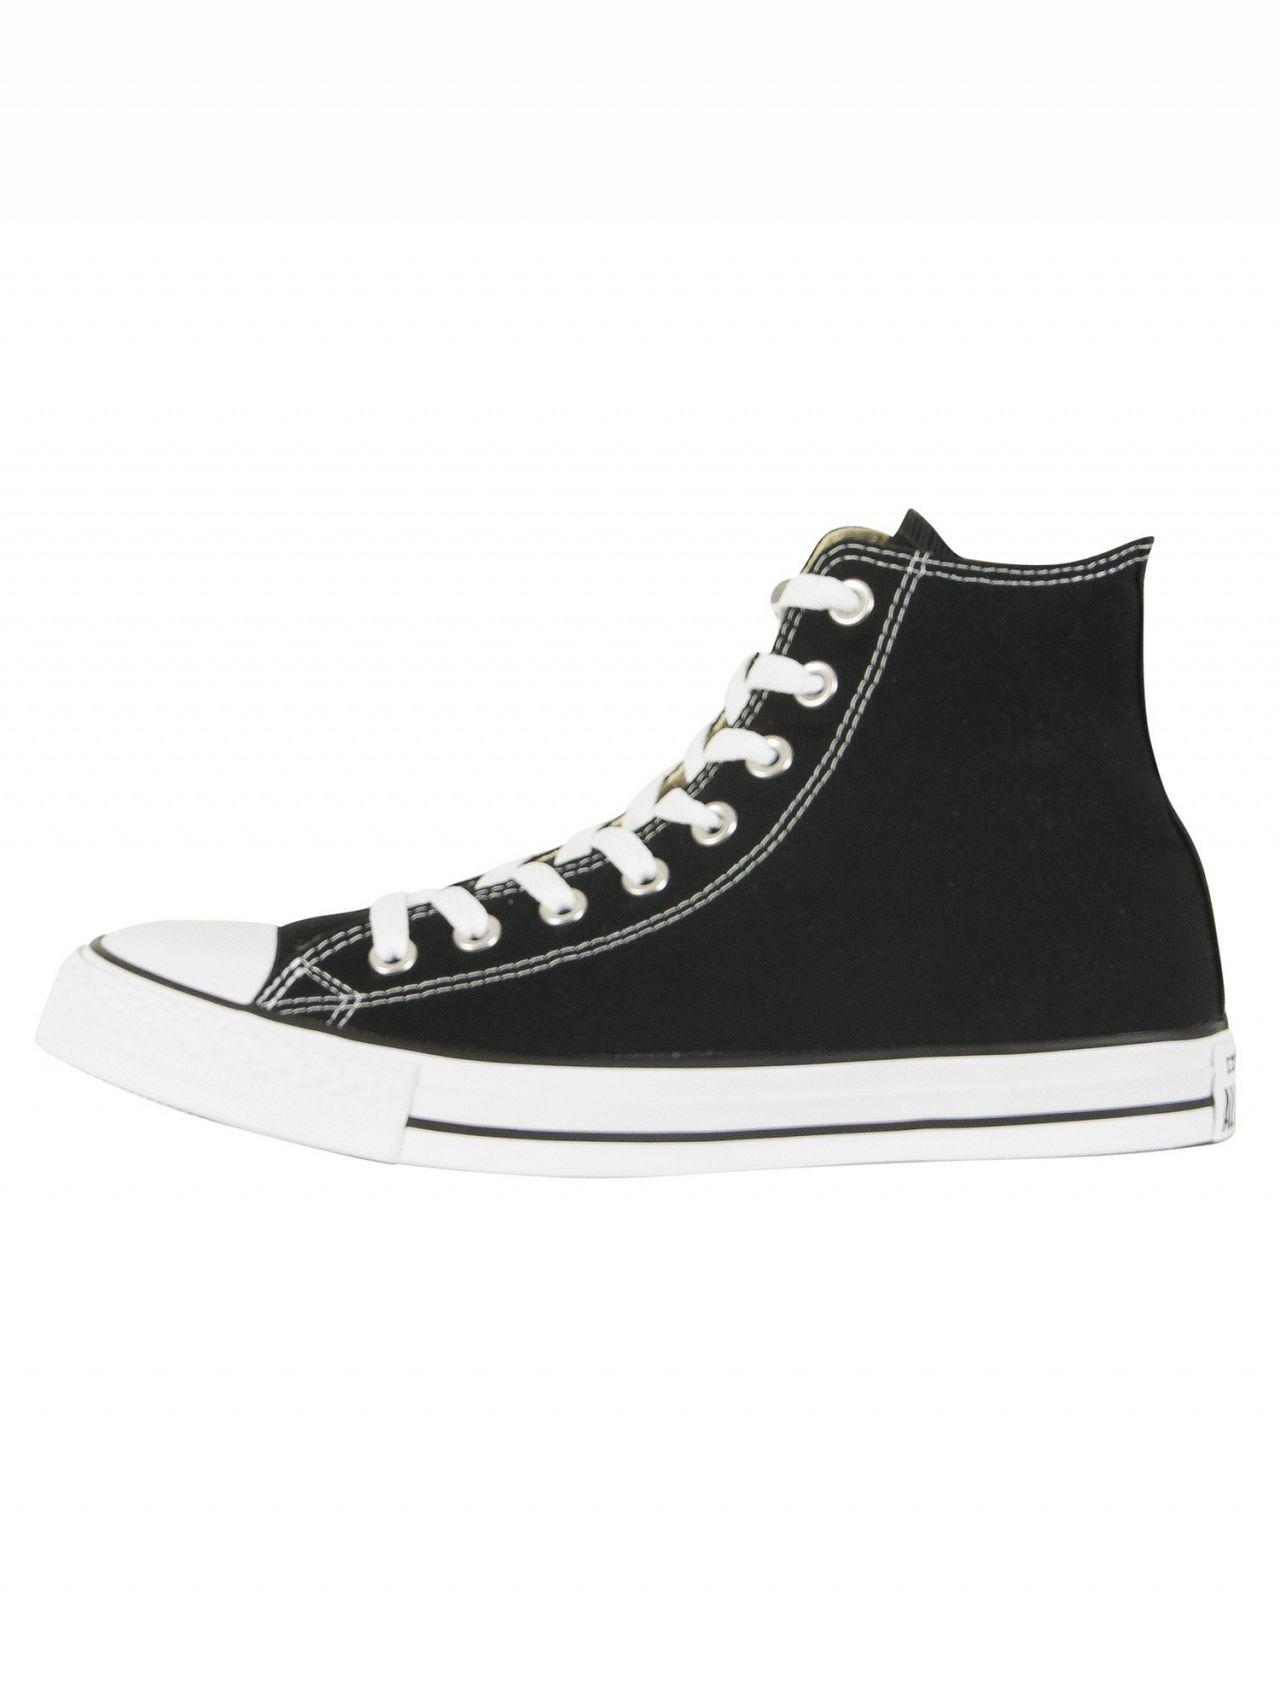 Converse - Chuck Taylor All Star Black Hi Trainers for Men - Lyst. View  fullscreen 9f4be2dcf